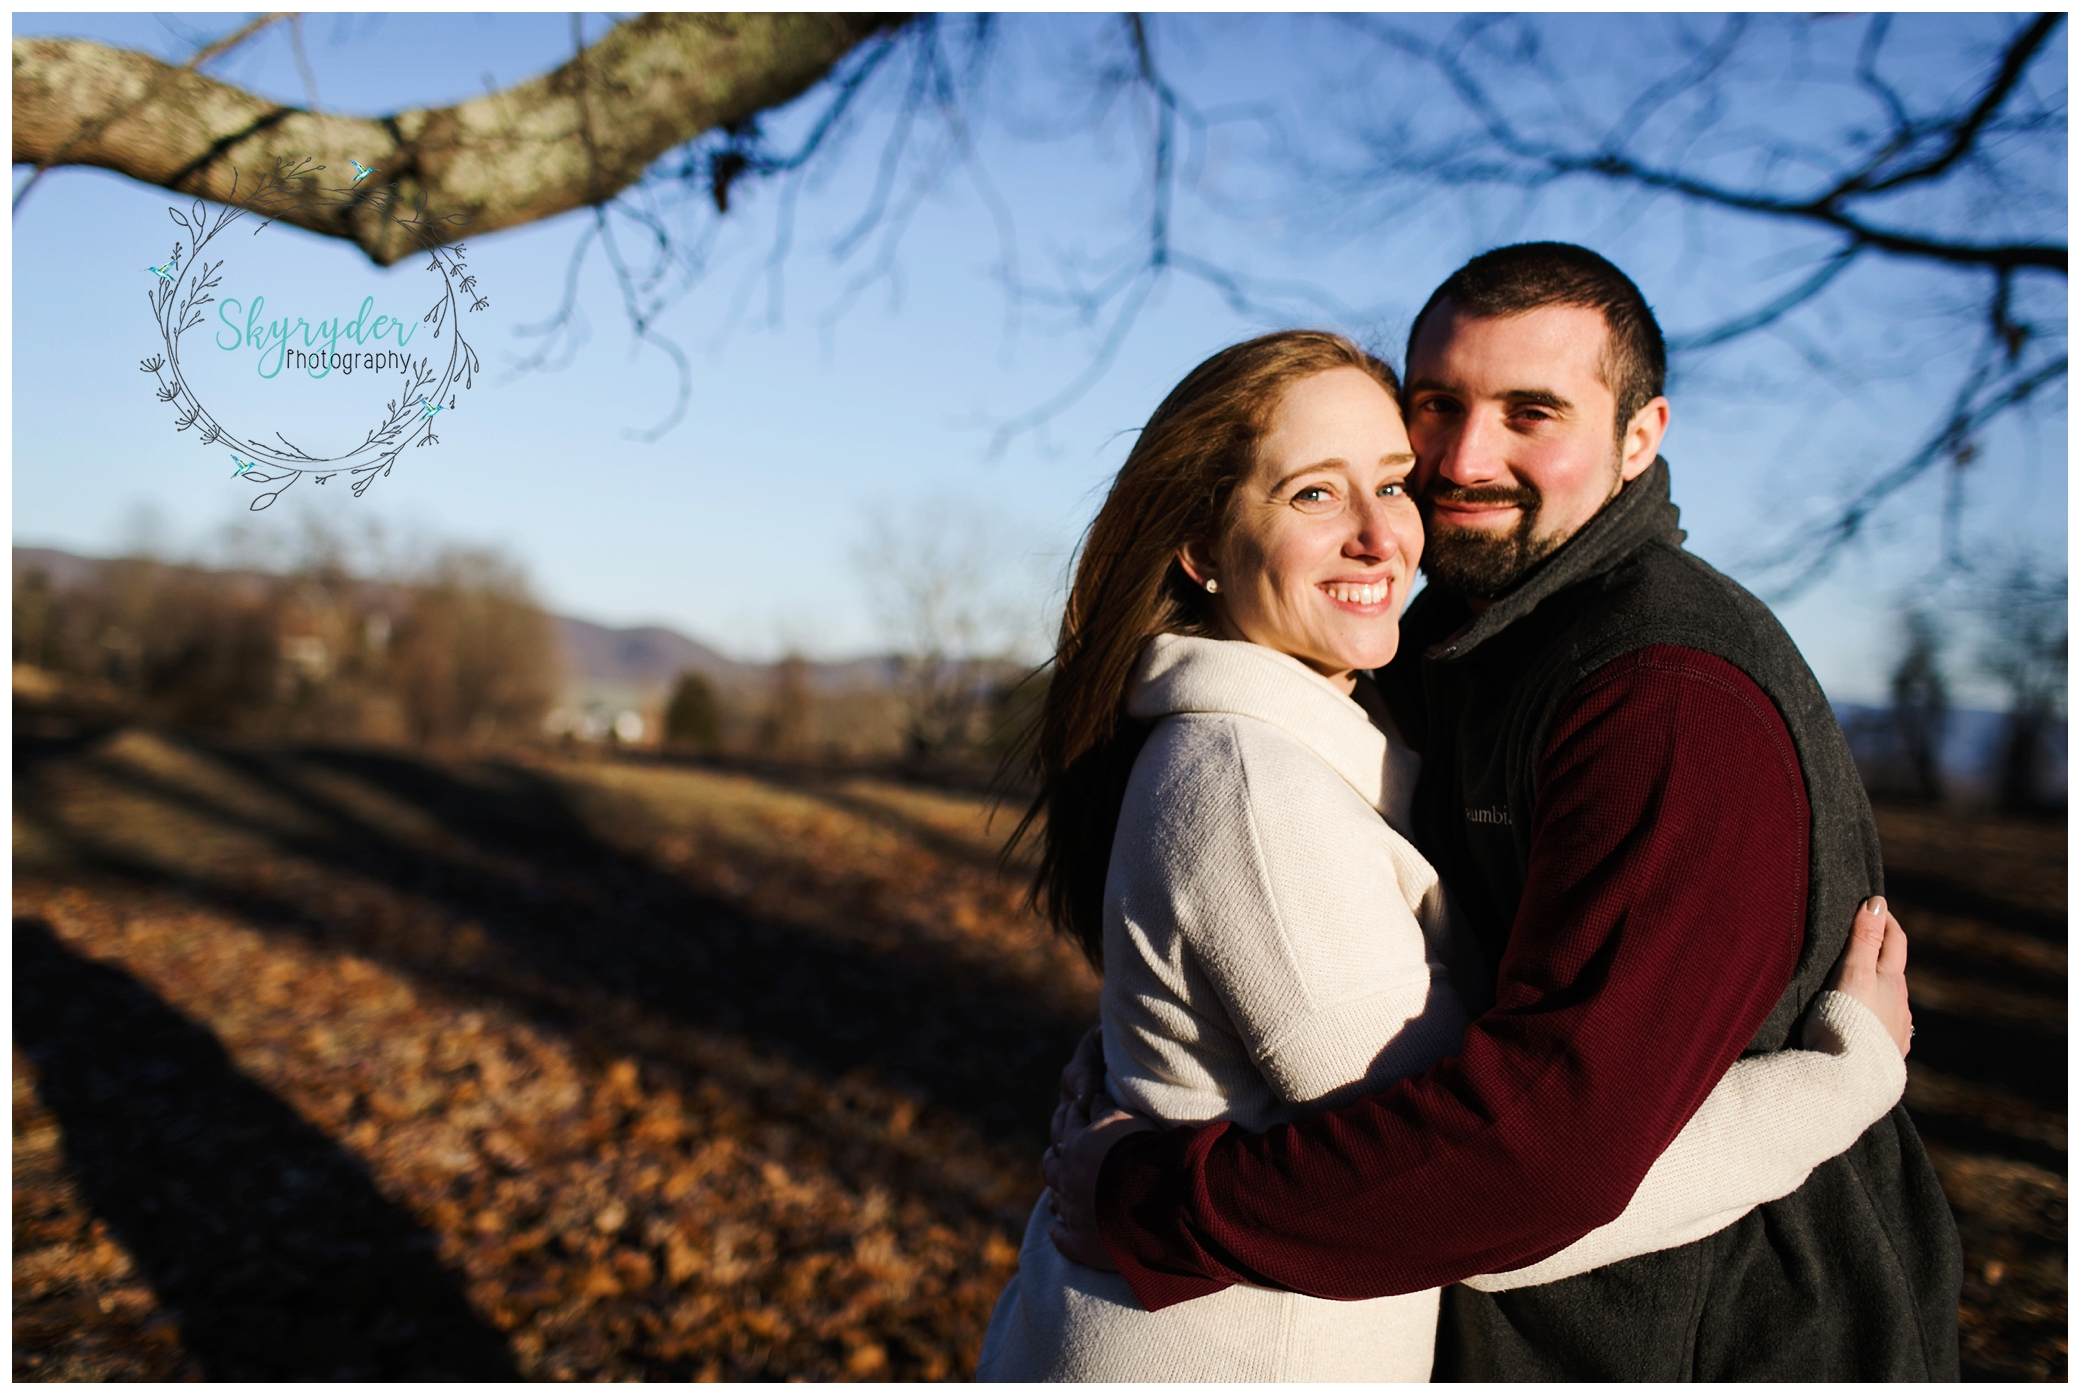 blacksburg-wedding-photographer-charlottesville-lexington-roanoke-skyryder